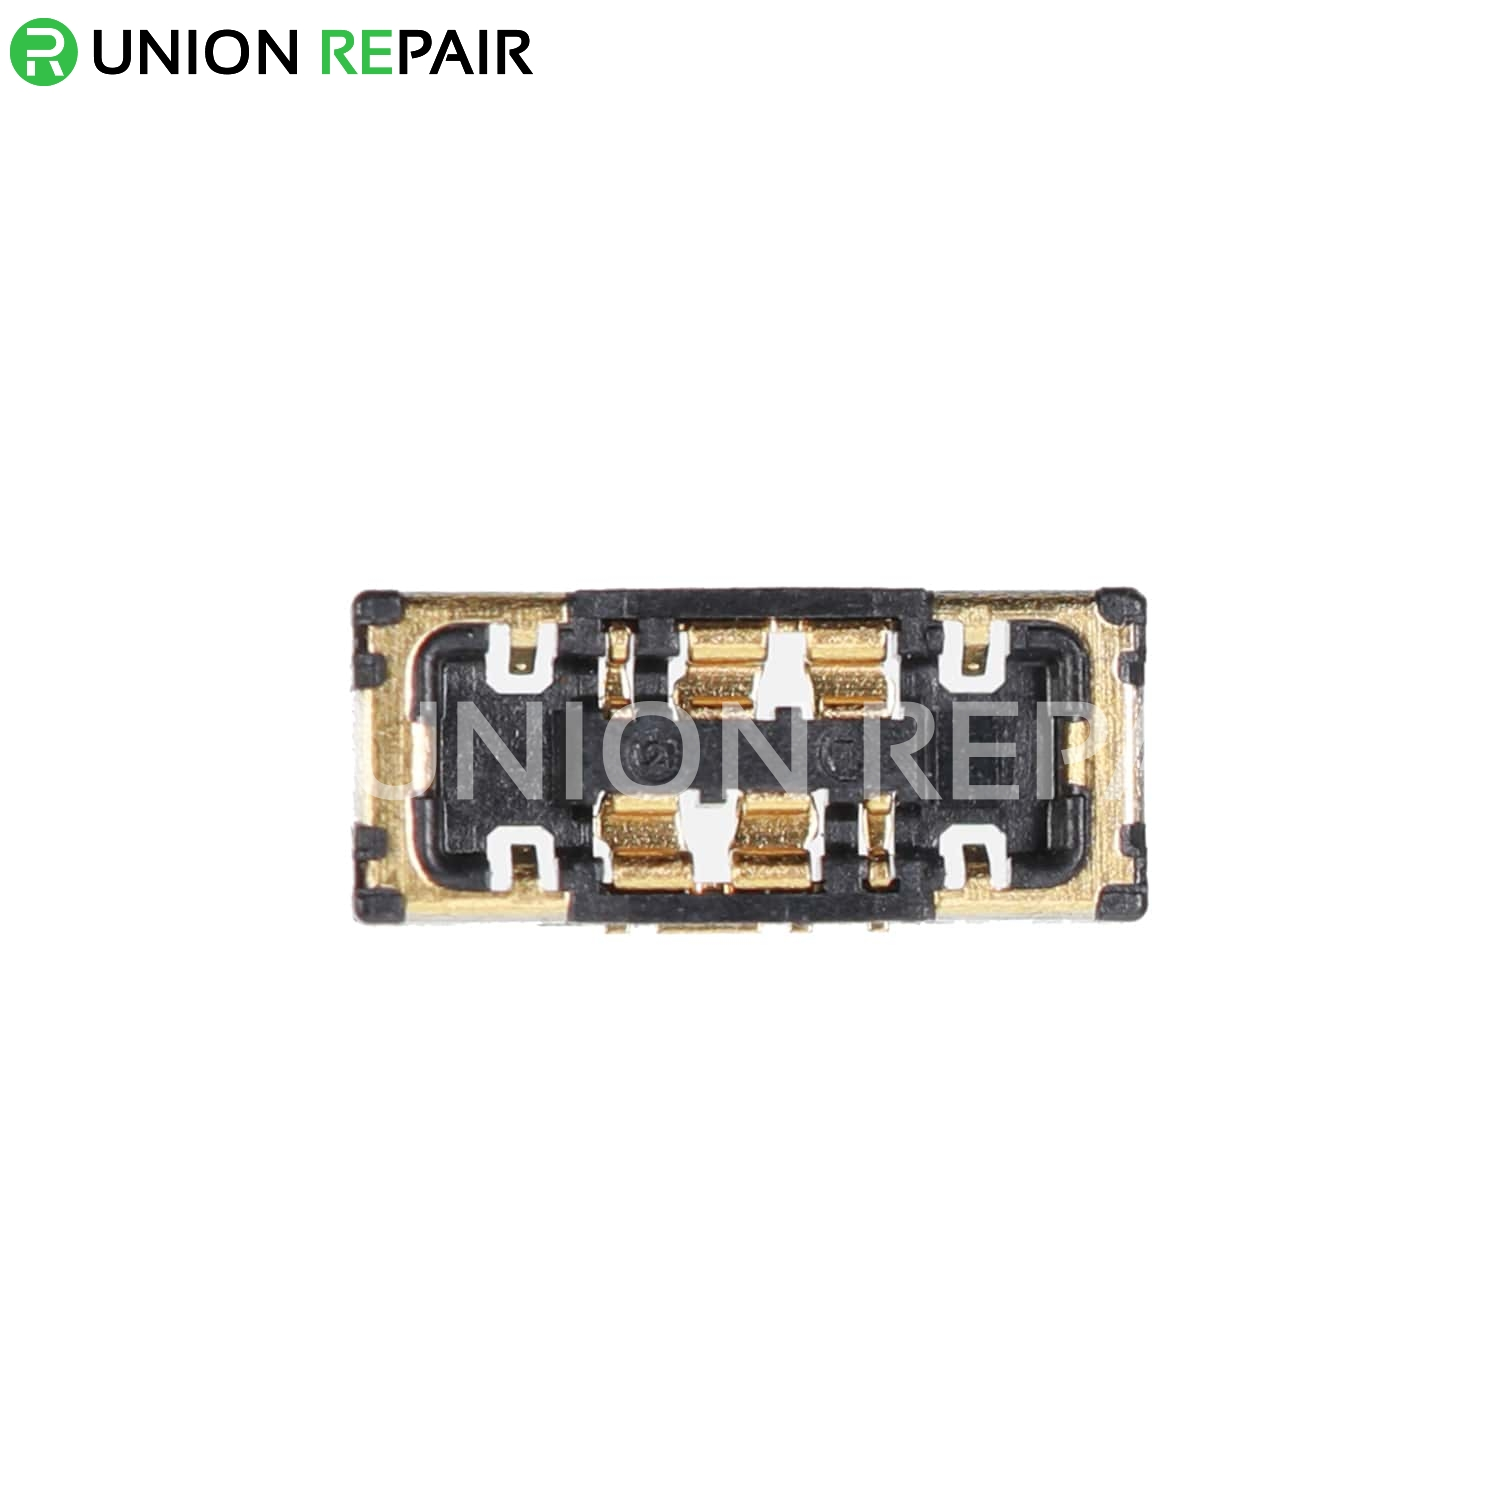 Replacement for iPhone XS Battery Connector Port Onboard